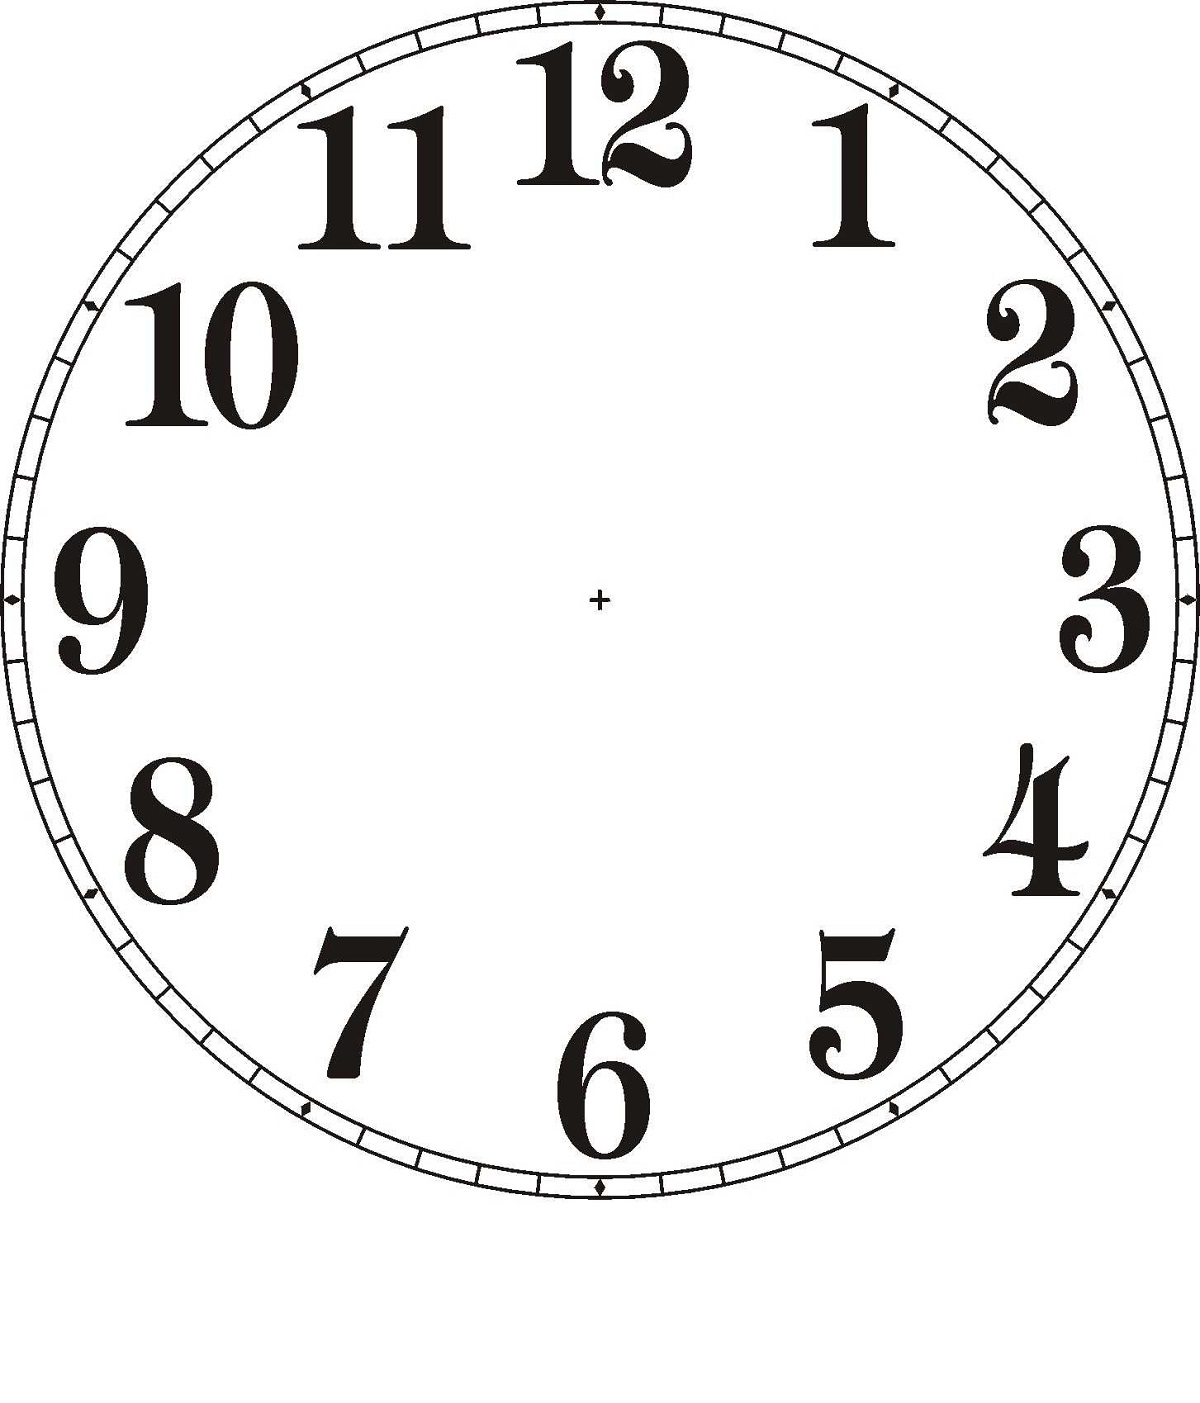 1200x1403 Clock Face Image Printable To Learn Telling Time Learning Printable